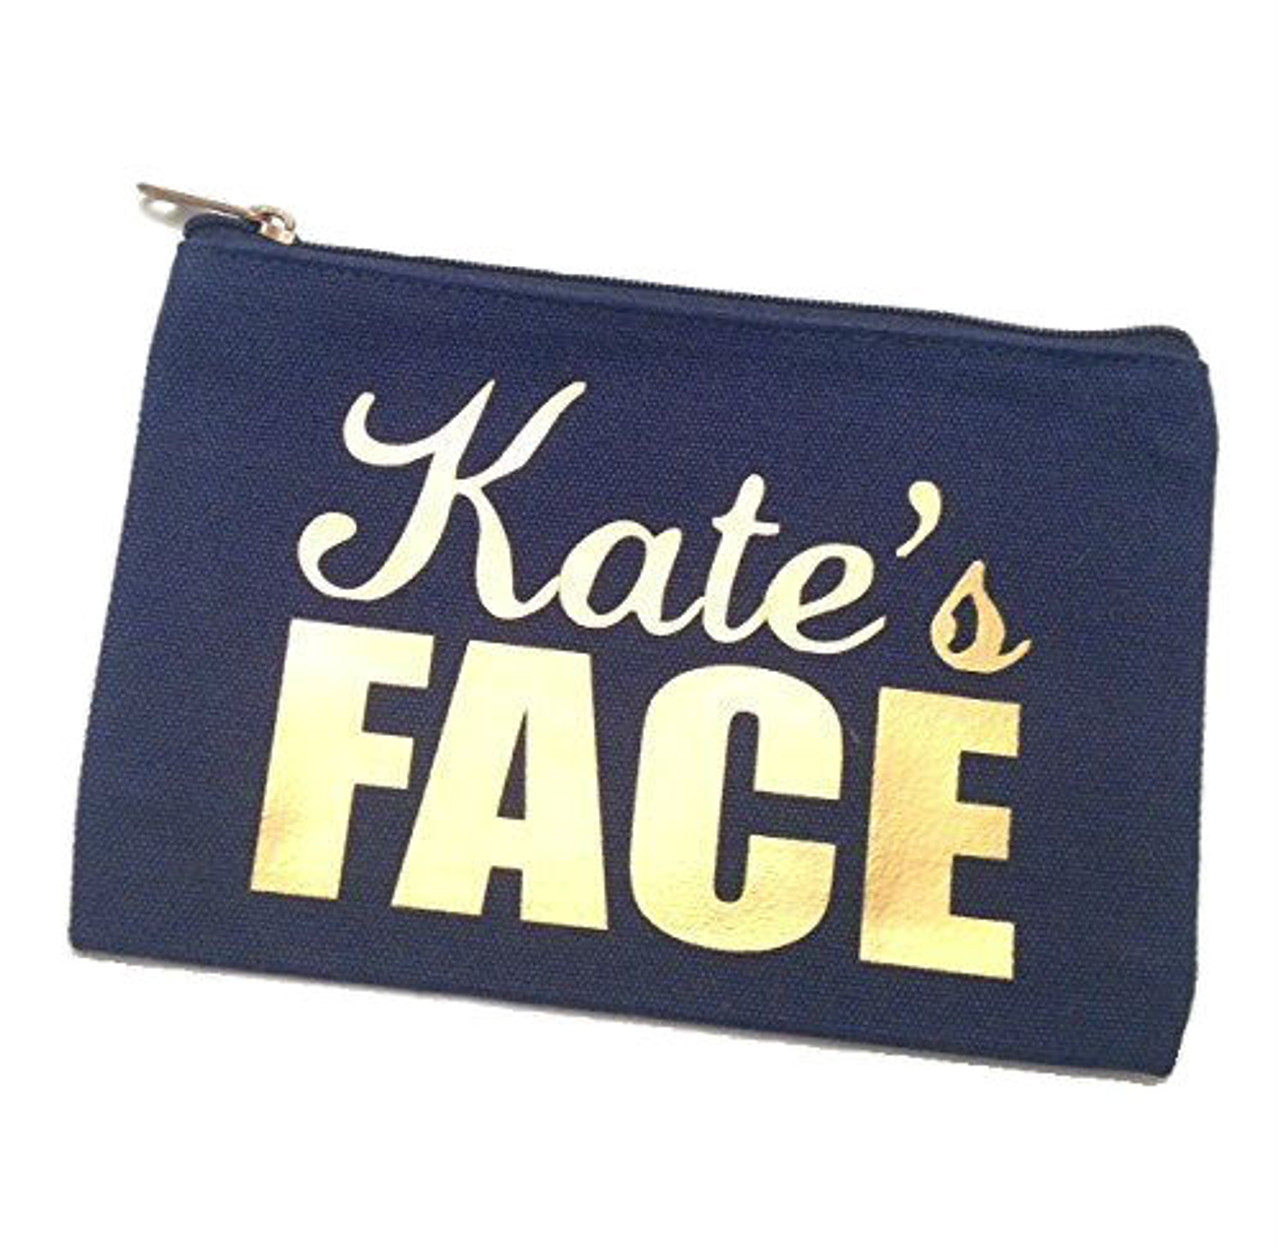 81138acafd0b Face It Personalized Makeup Bag In Navy